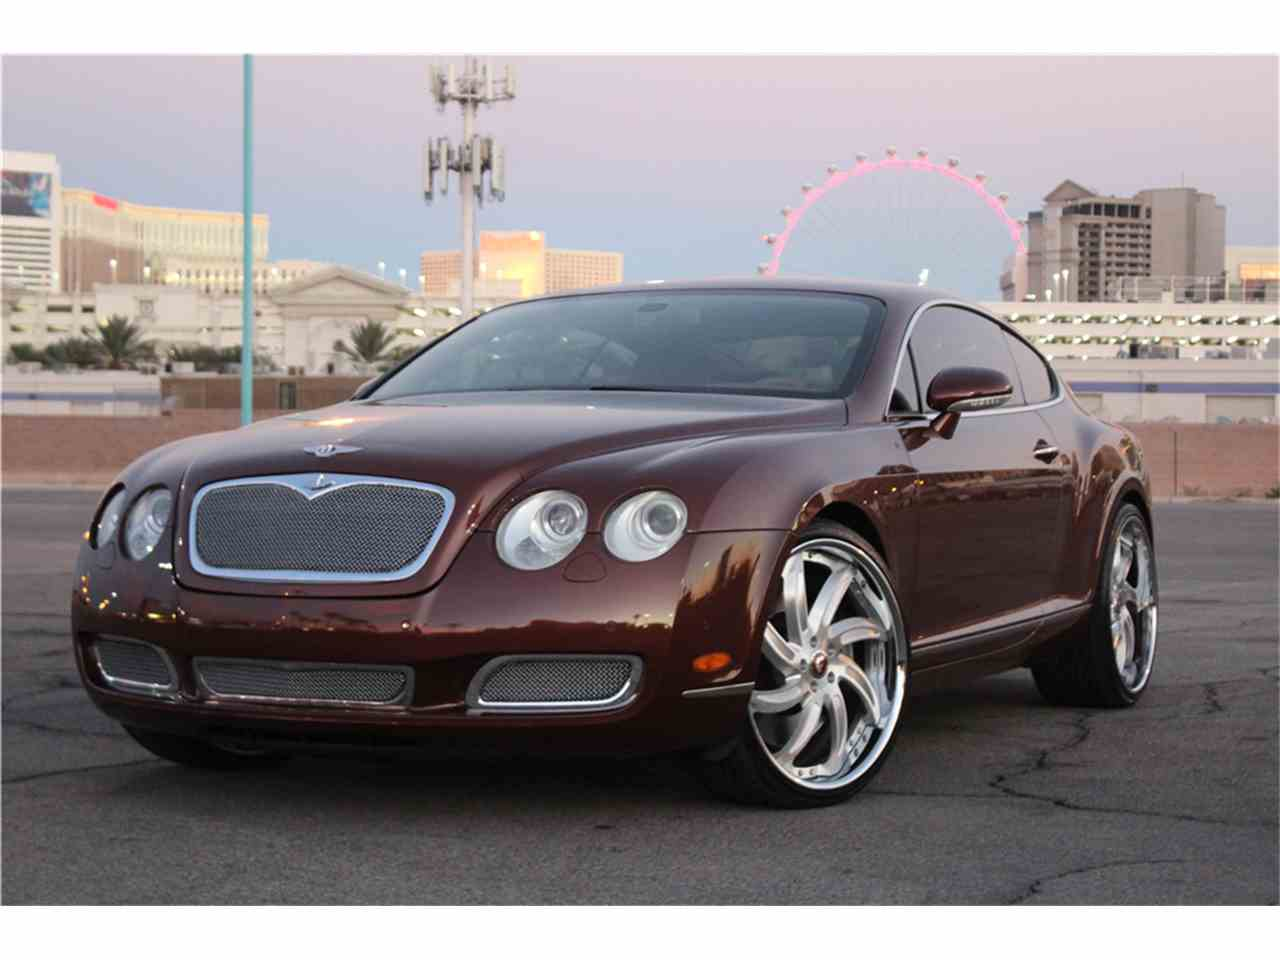 near gt coupe bentley york car new syosset cars for exotics continental sale classic